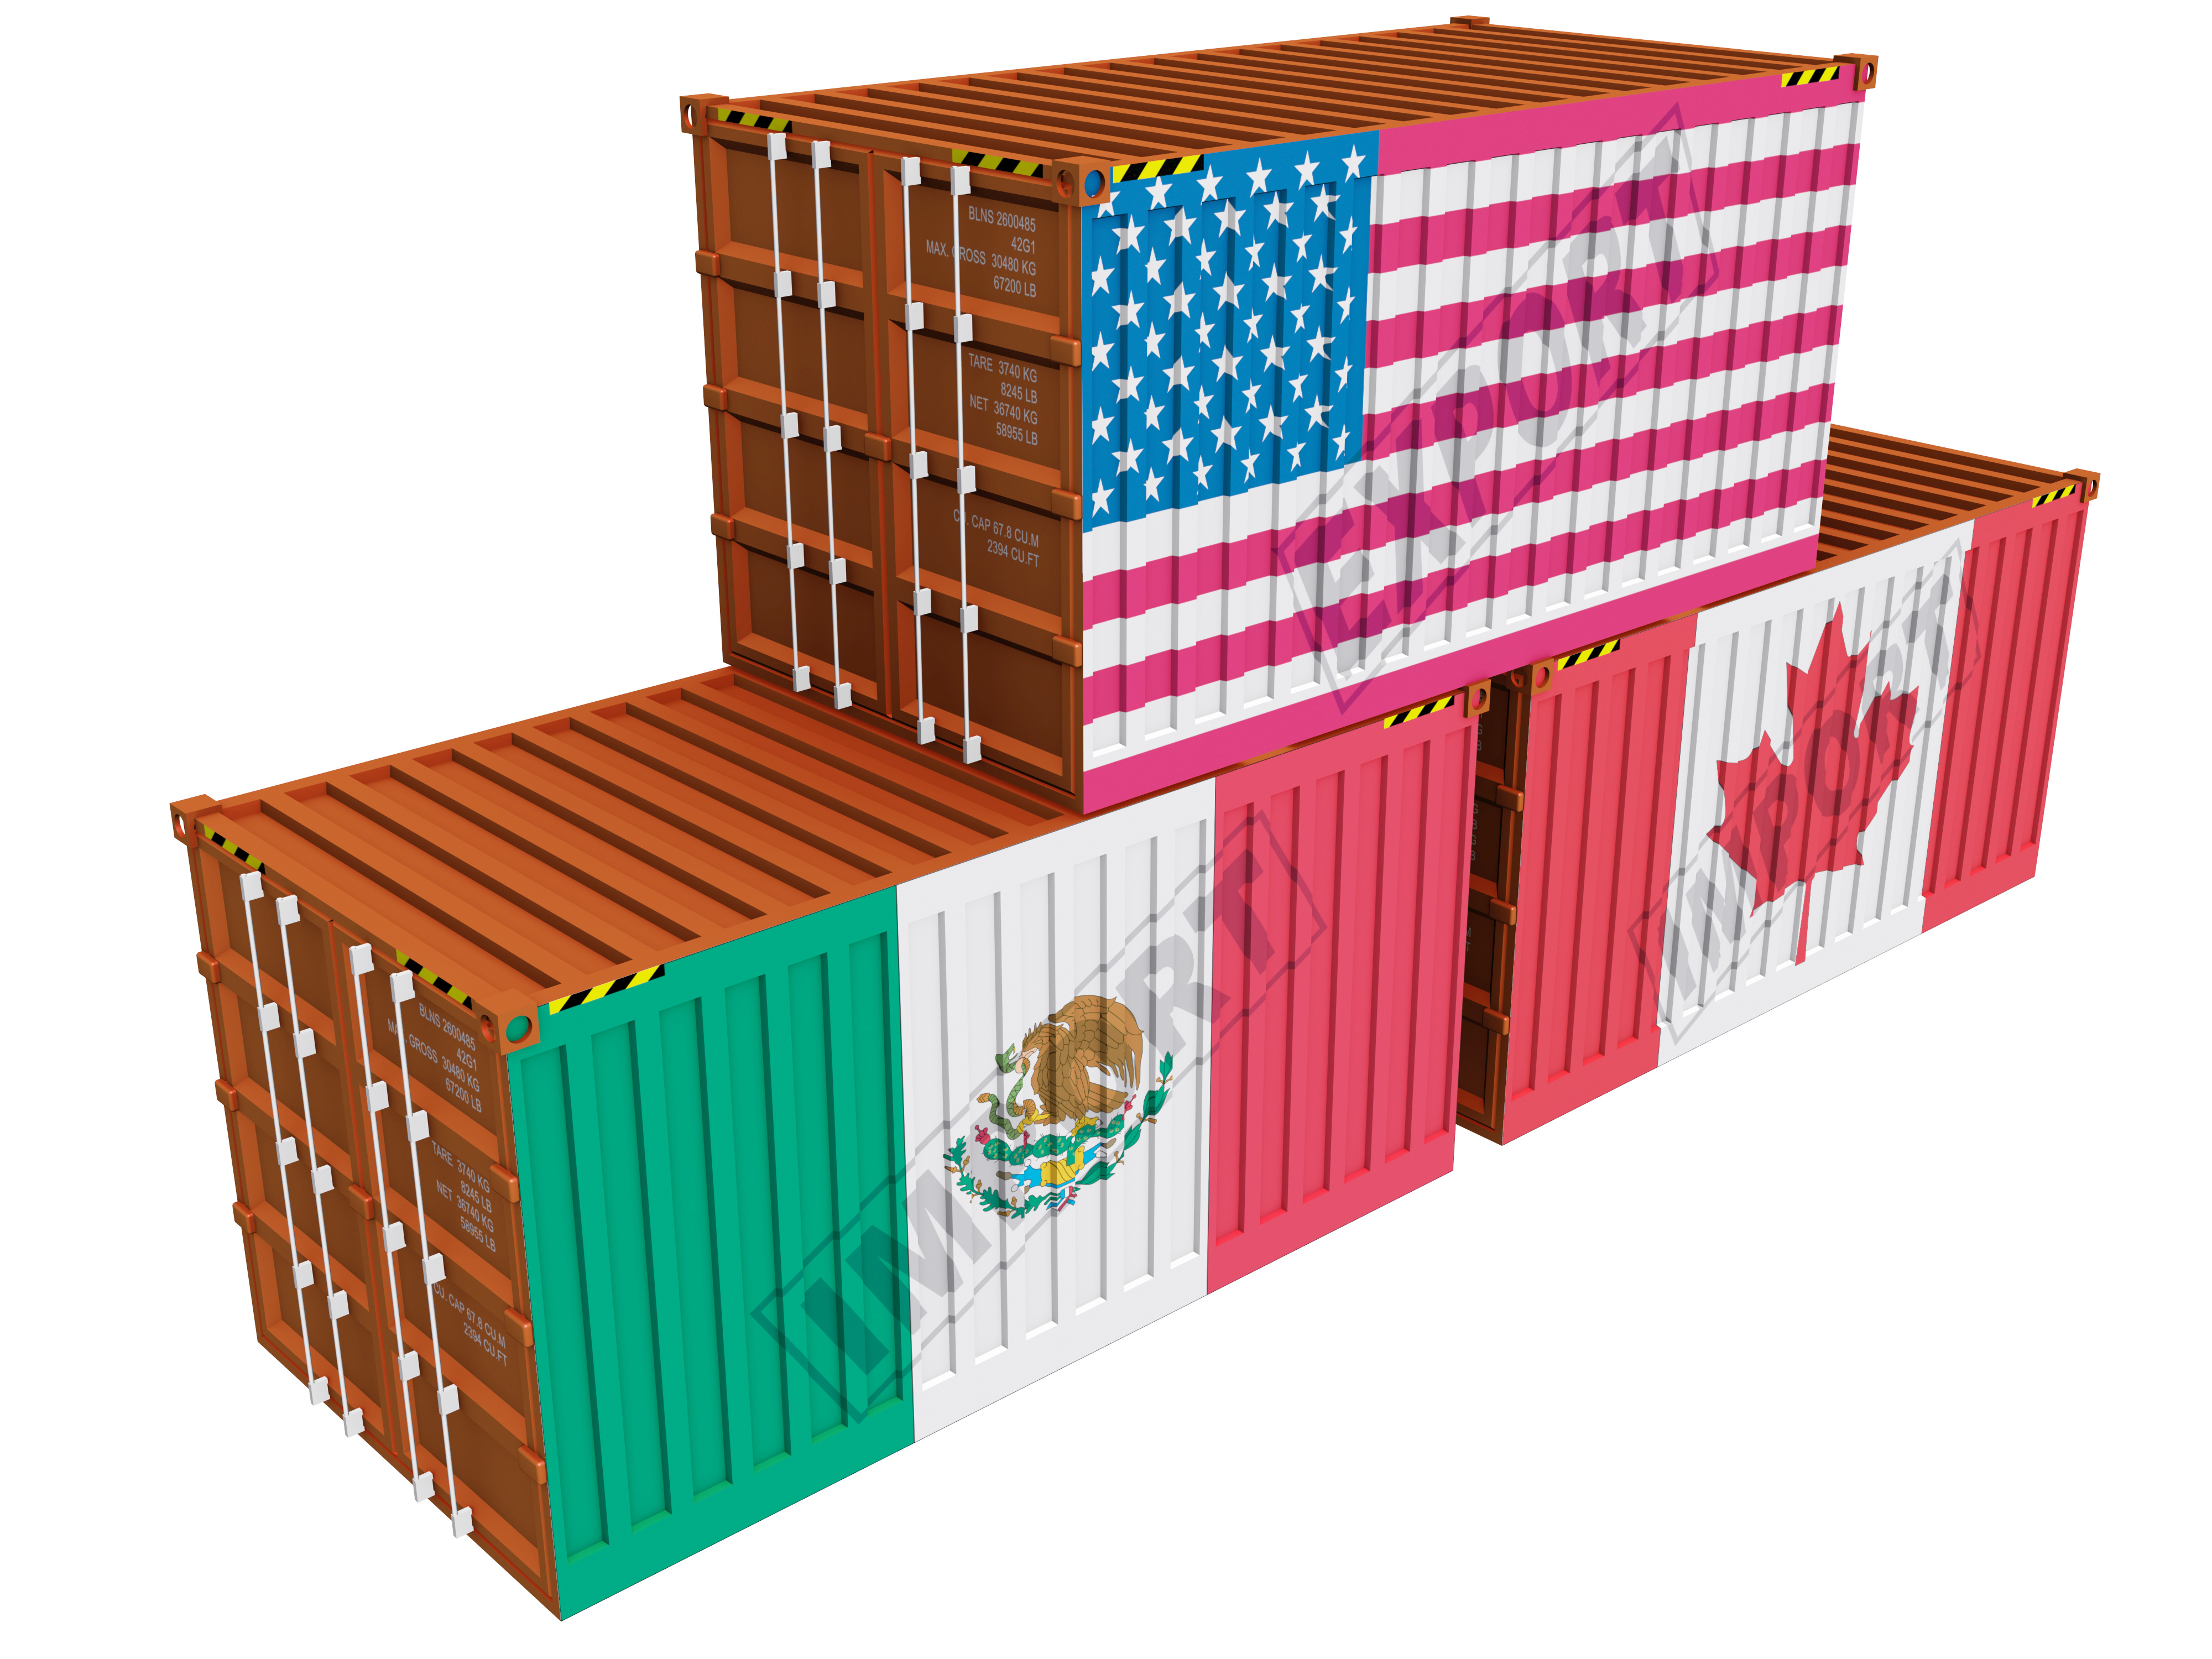 USA Canada Mexico Intermodal